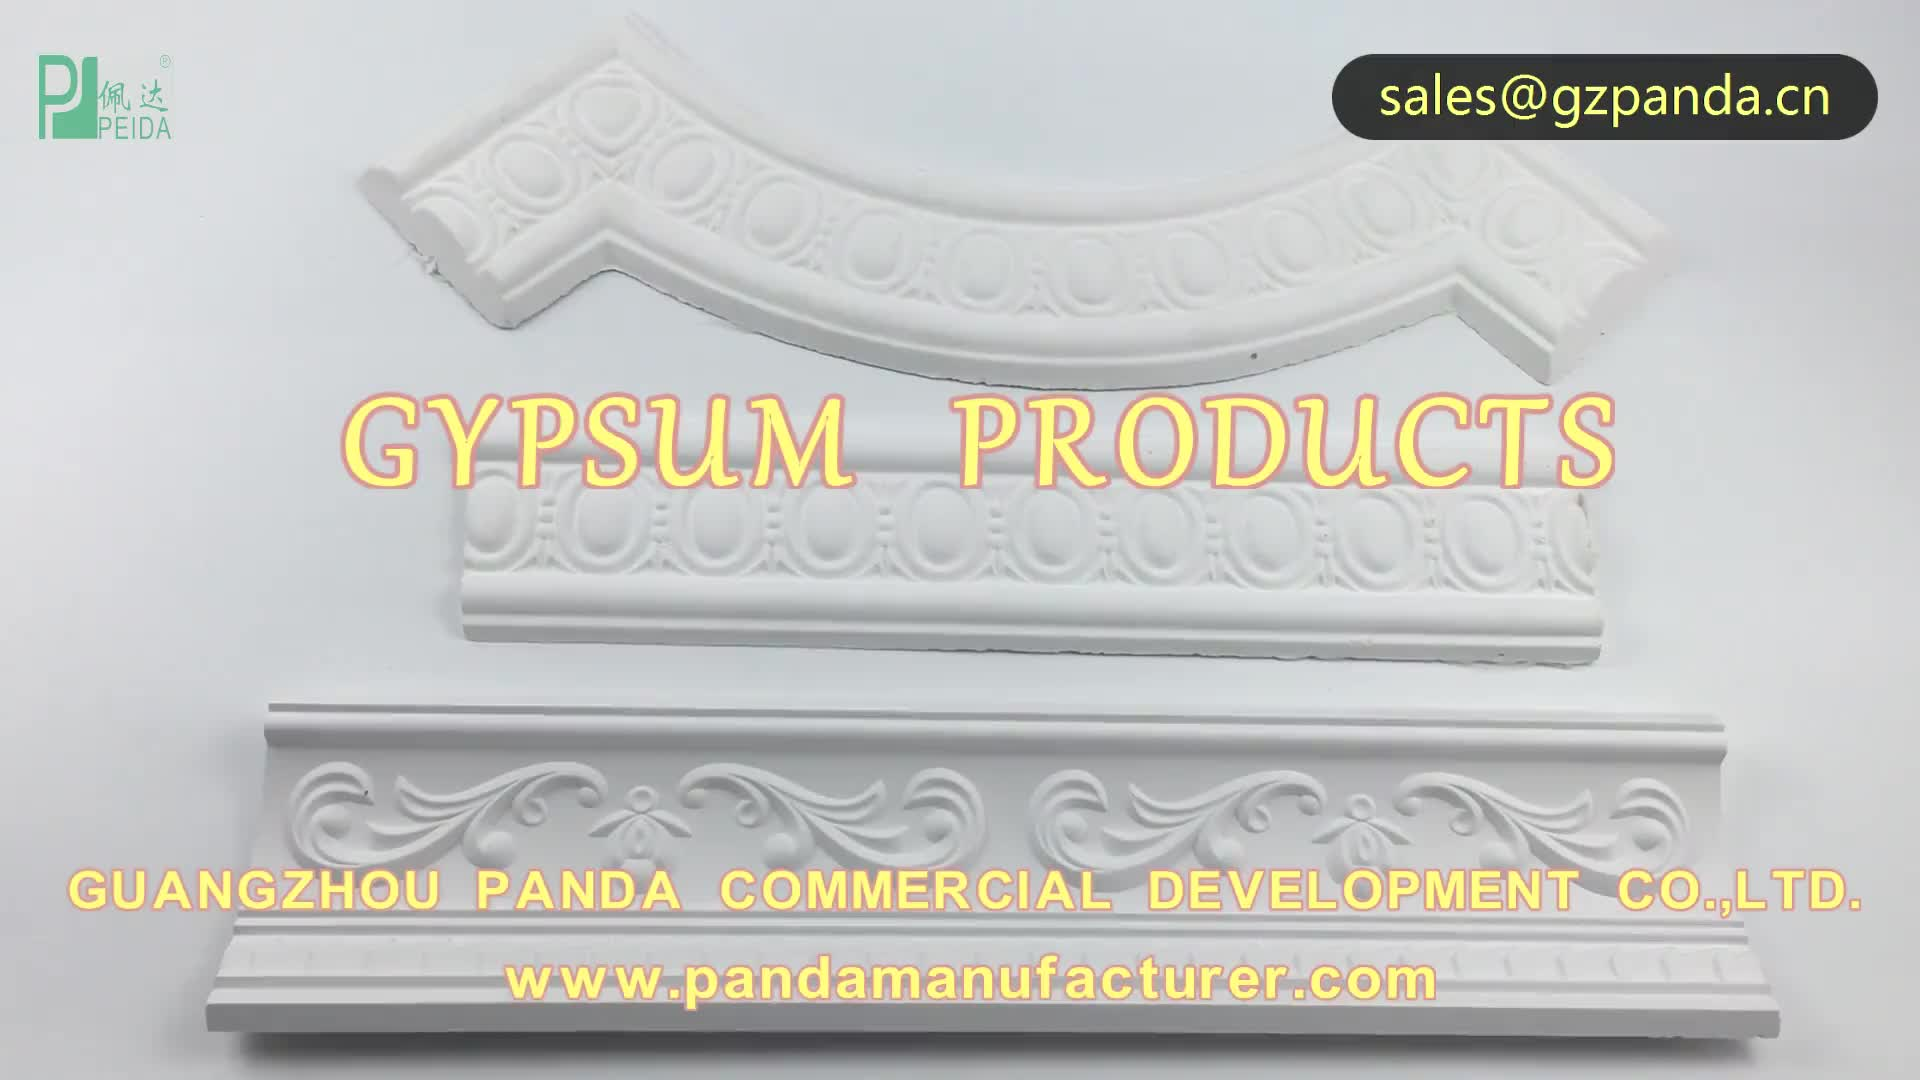 Fire-Resistant Molds For Gypsum Cornice Molding